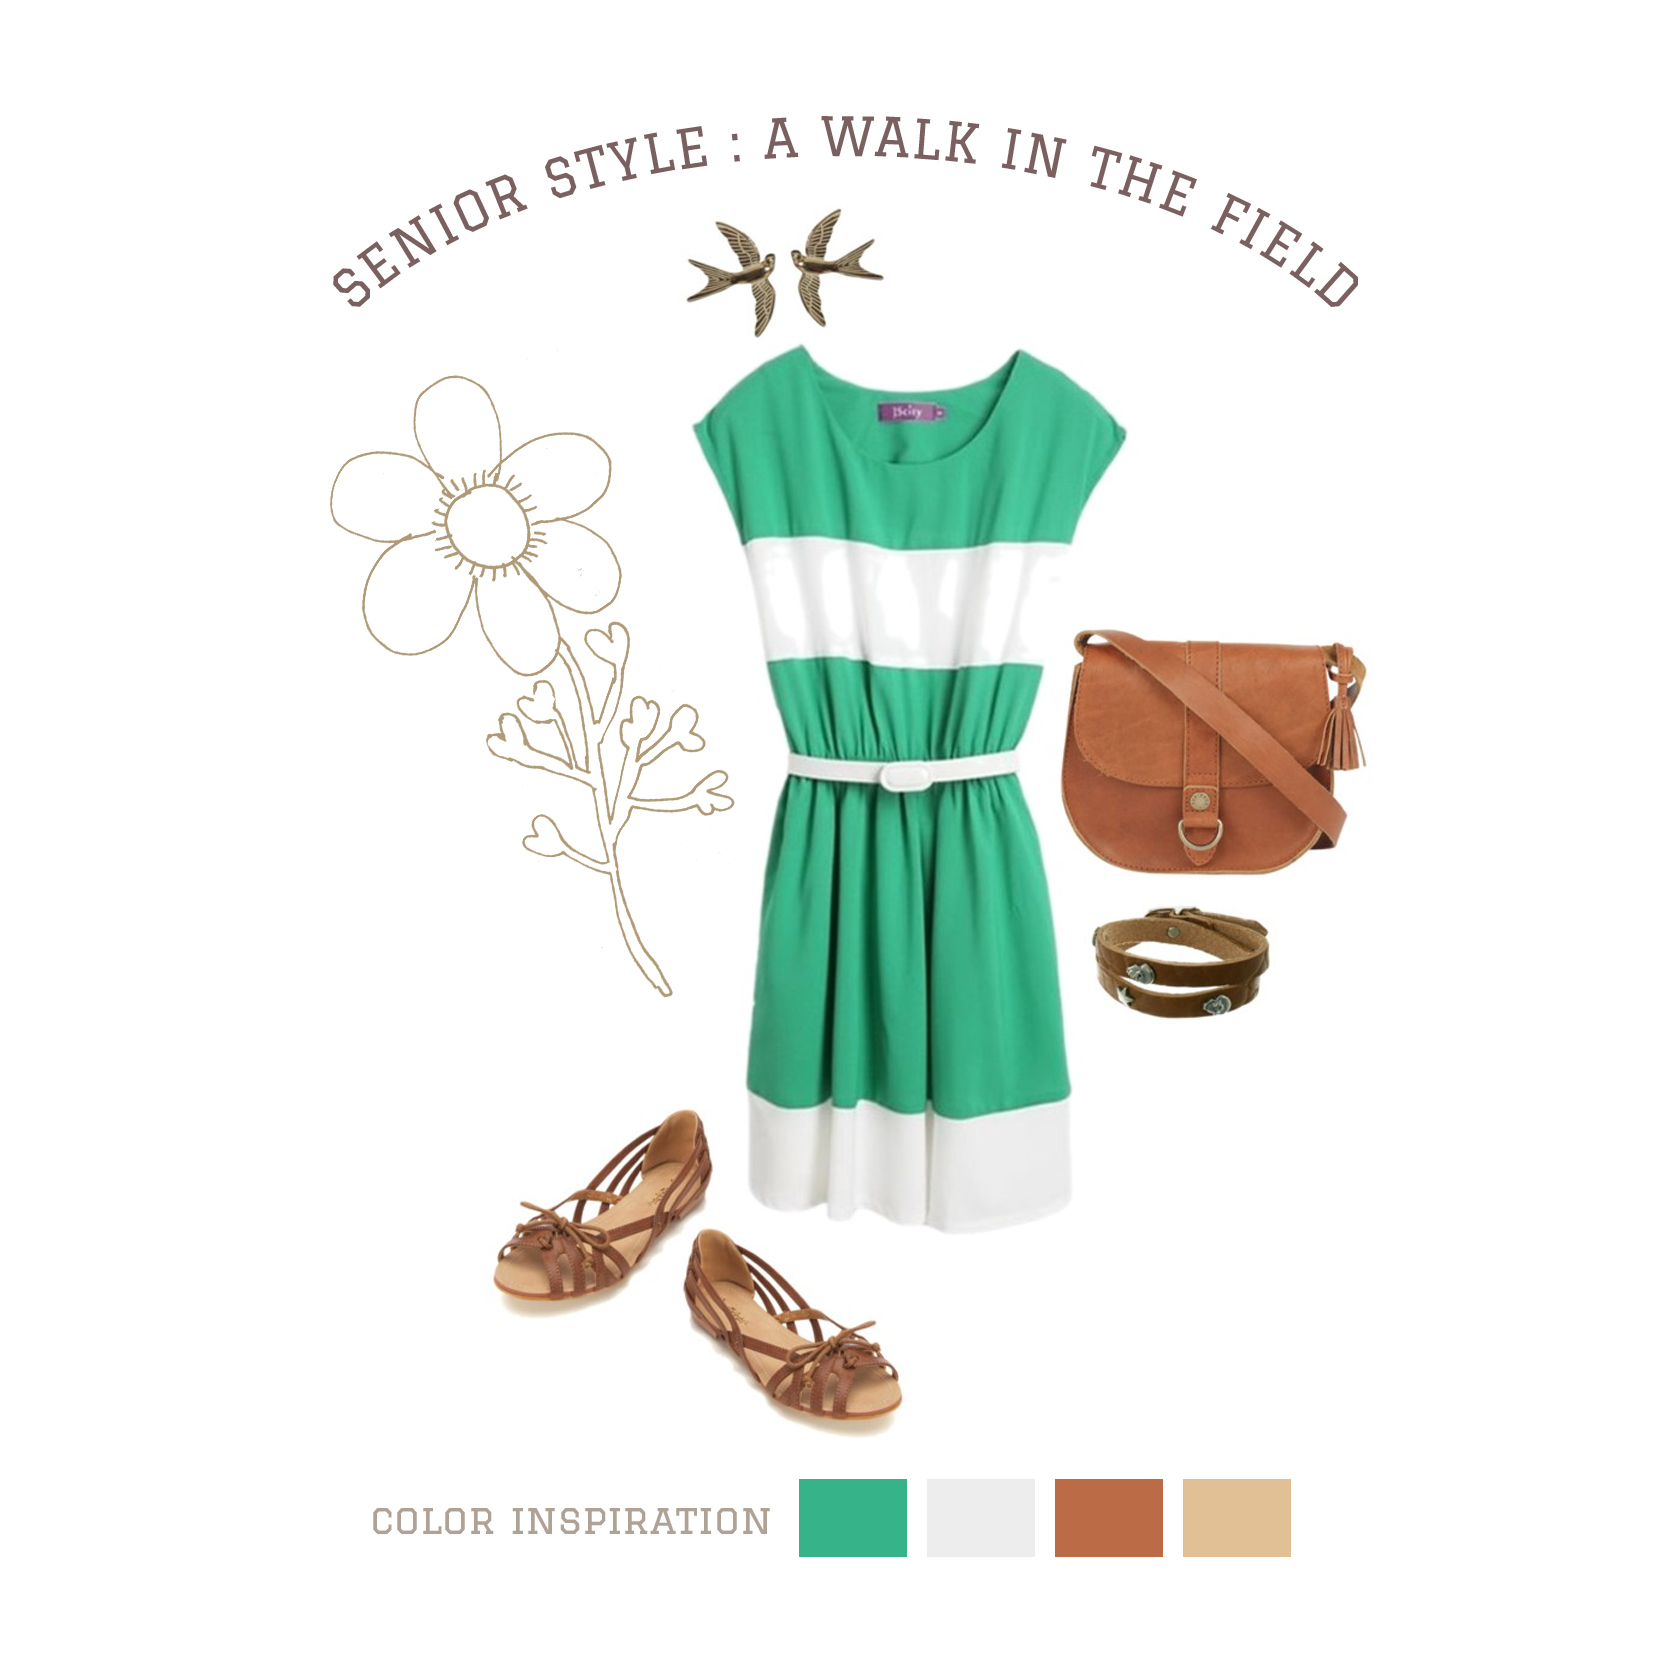 A Walk In The Field A stunning blend of emerald and natural leather make for an unforgettable outfit! Perfect for outdoor shoots, this combination creates a look both rustic and modern. Accessory details add interest to your images and allow lots of room for self-expression!